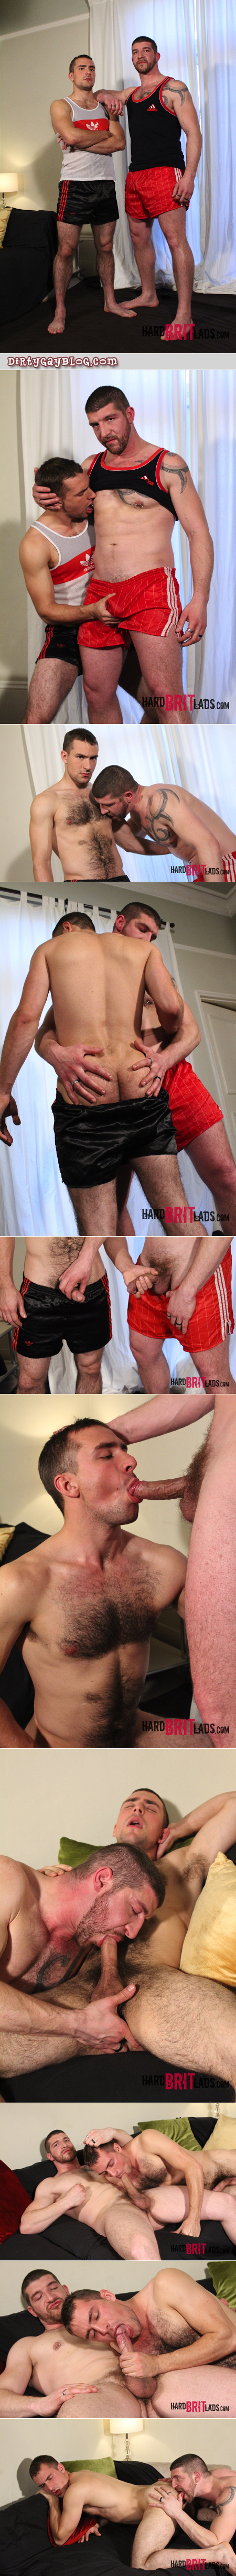 Hairy, muscular jocks swapping gay blowjobs.